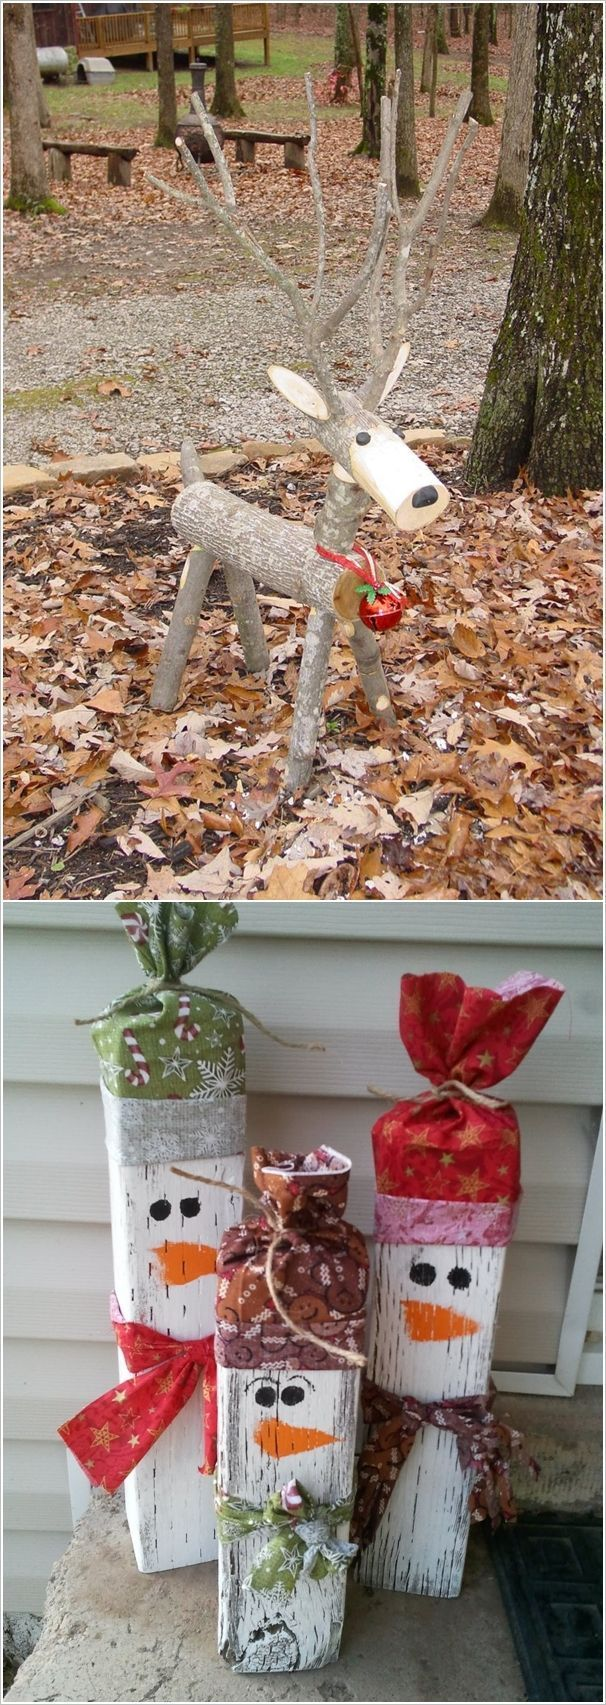 Wooden outdoor christmas decorations - These Wooden Diy Outdoor Winter And Christmas Decorations Are Adorable I Love The Reindeer